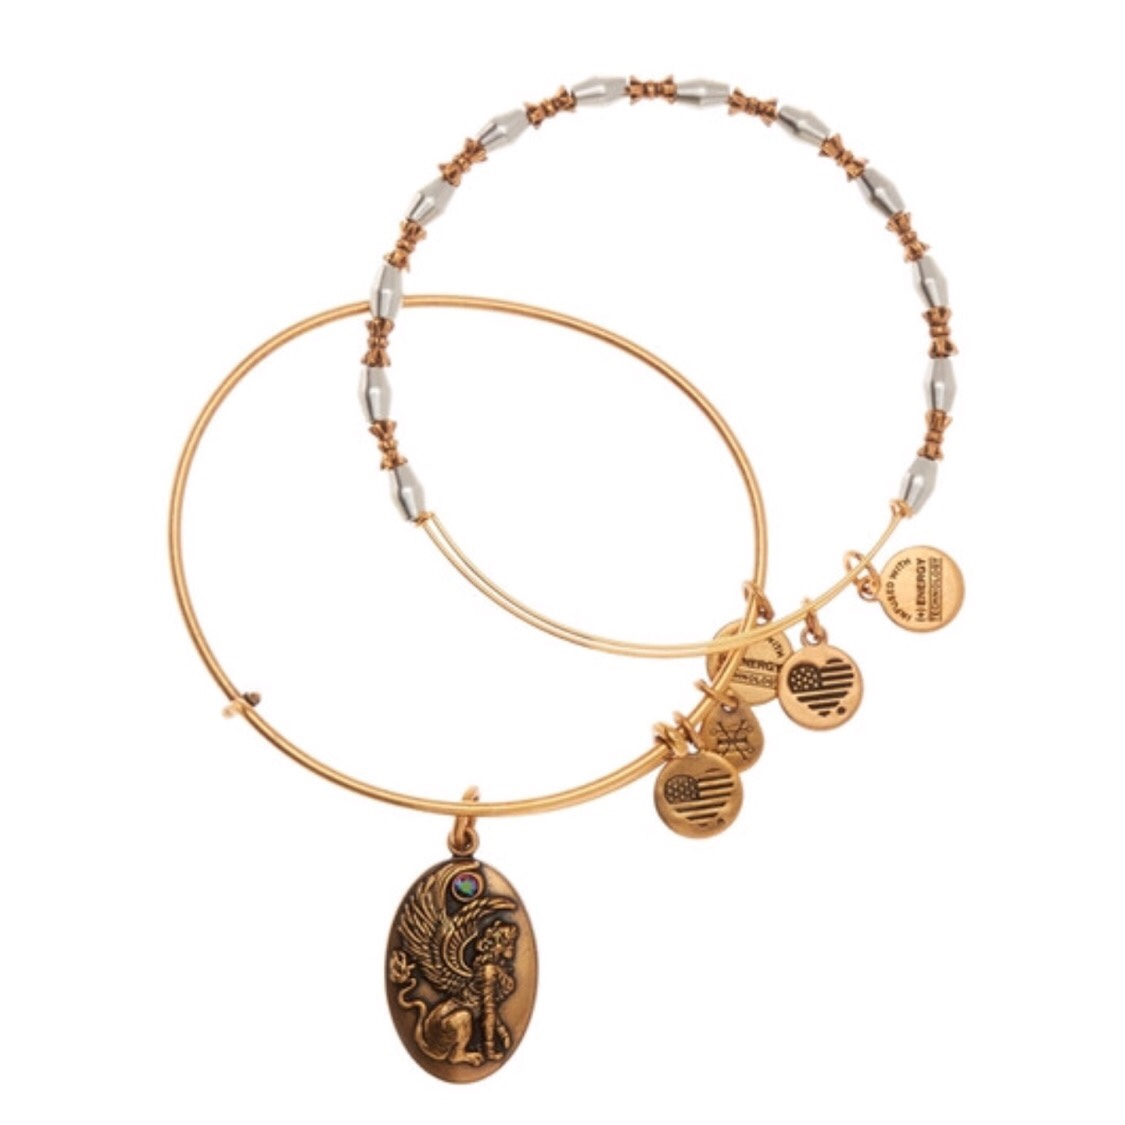 Nwt Alex And Ani Sphinx Charm Expandable Wire Bangle